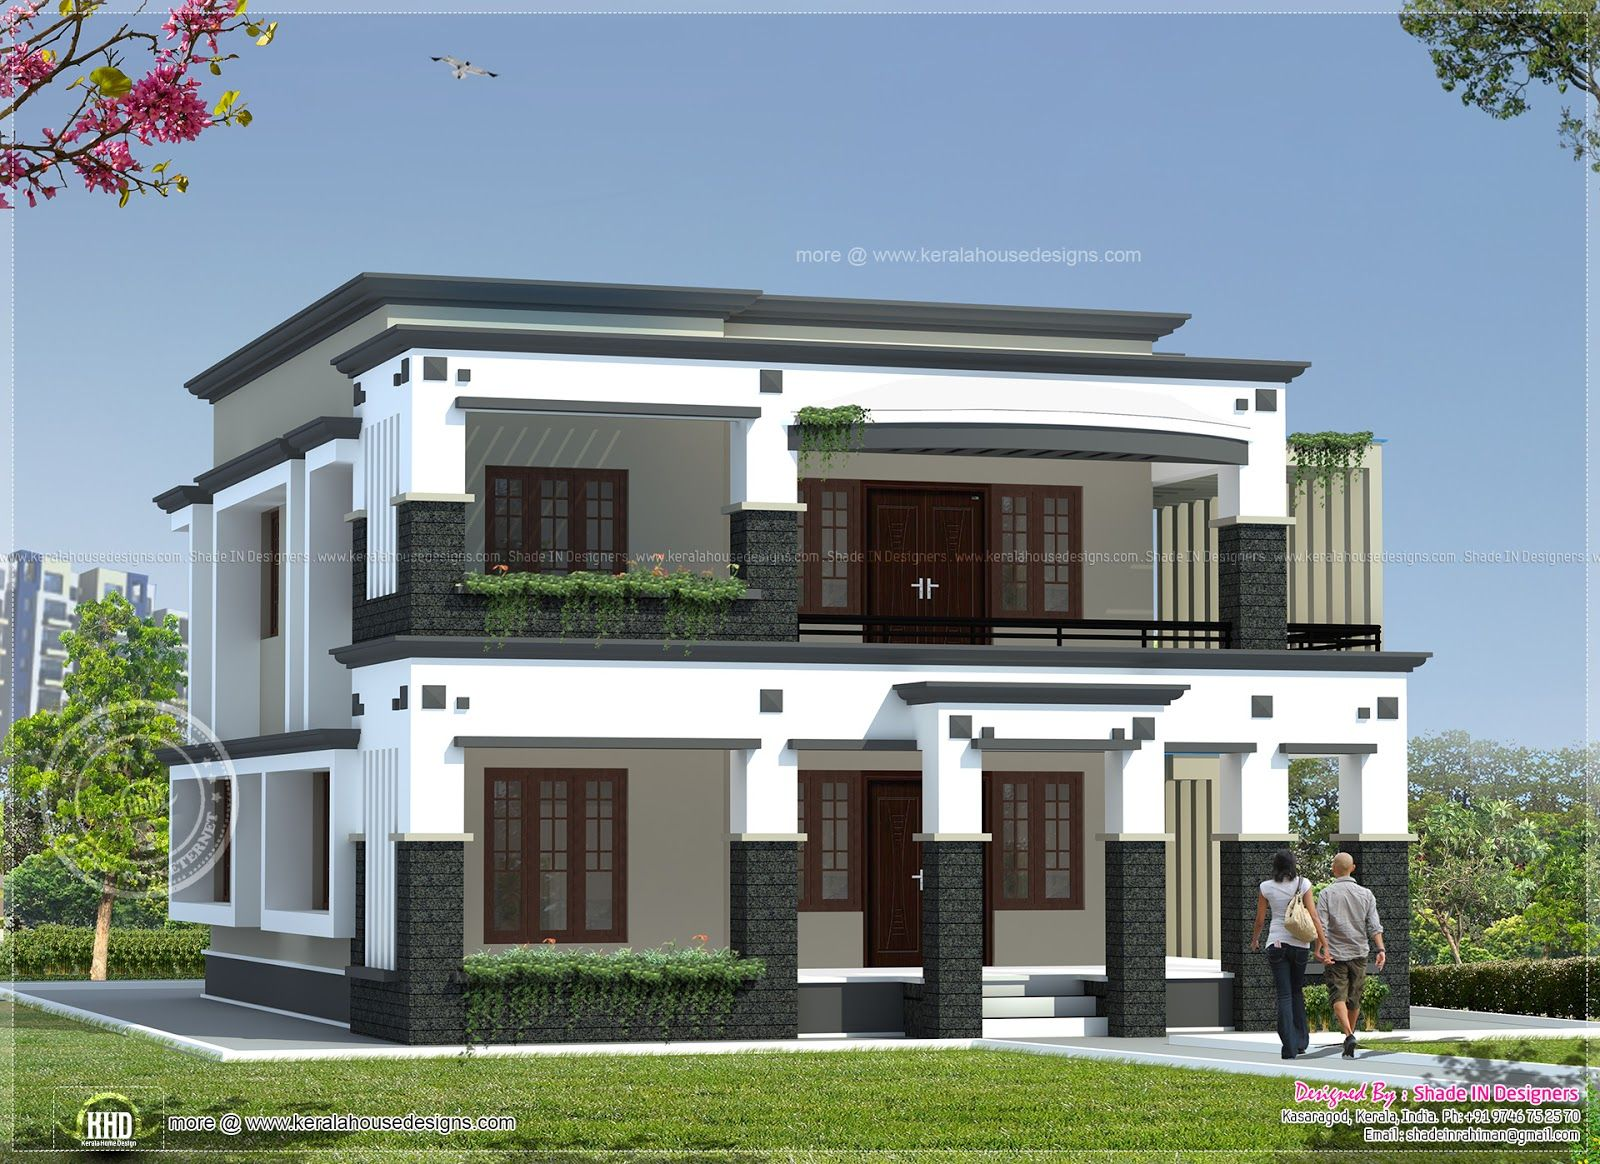 Elevations of single storey residential buildings google Modern flat roof house designs